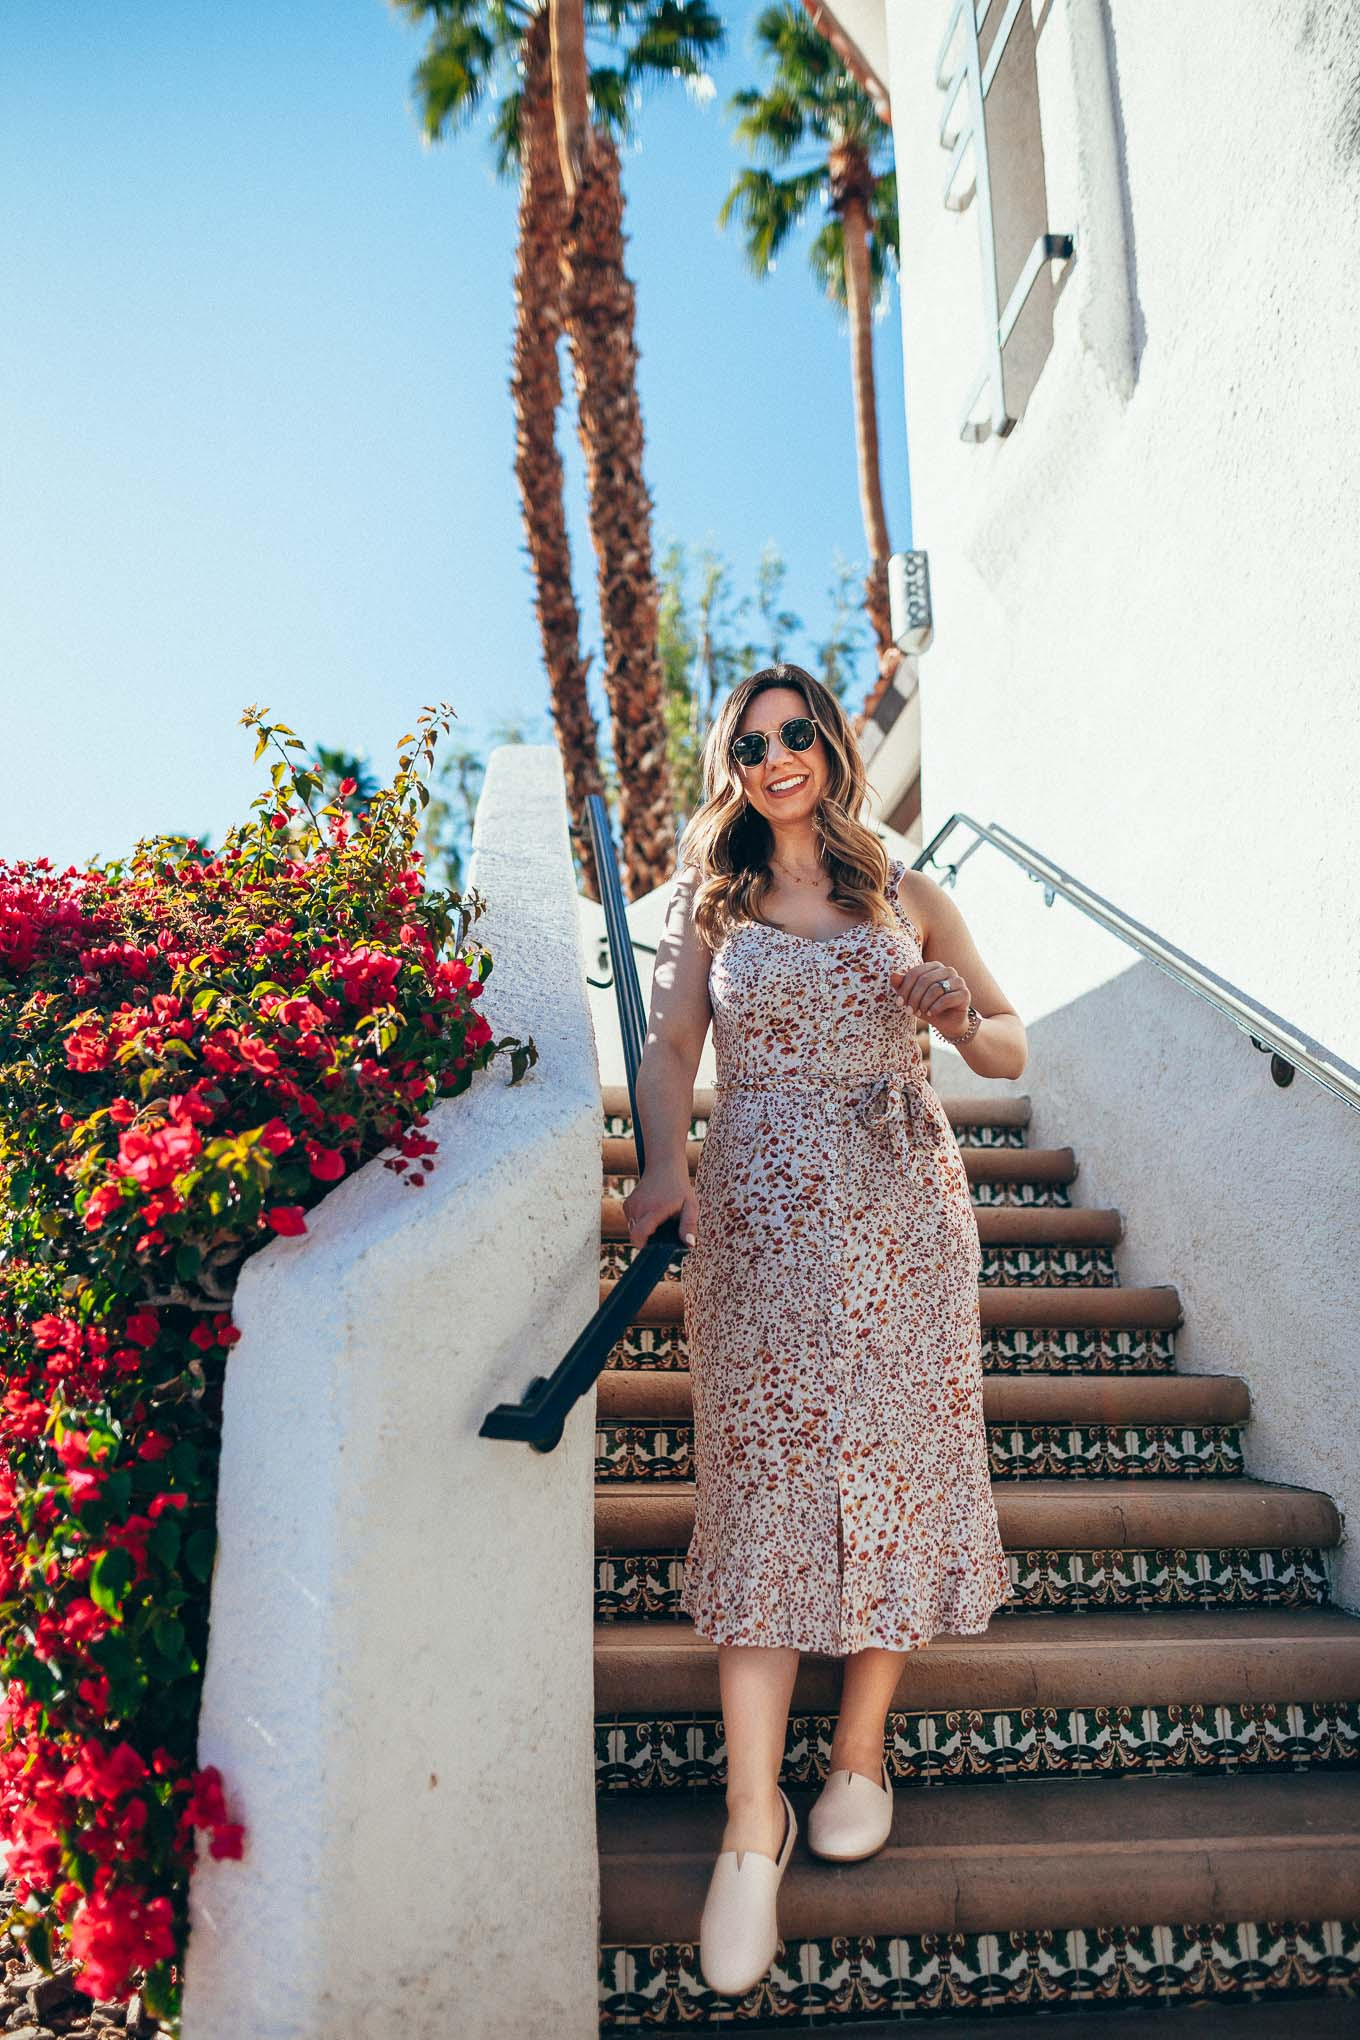 Boc Flats by popular Chicago fashion blog, Glass of Glam: image of a woman on a Spanish tile staircase and wearing a floral sleeveless dress and SUREE SLIP-ON. | Palm Springs Outfits by popular Chicago fashion blog, Just Add Glam: image of a woman standing on some Spanish tile steps and wearing a A&F Ruffle Midi Dress, DSW SUREE SLIP-ON, and Nordstrom Icons 53mm Retro Sunglasses RAY-BAN.